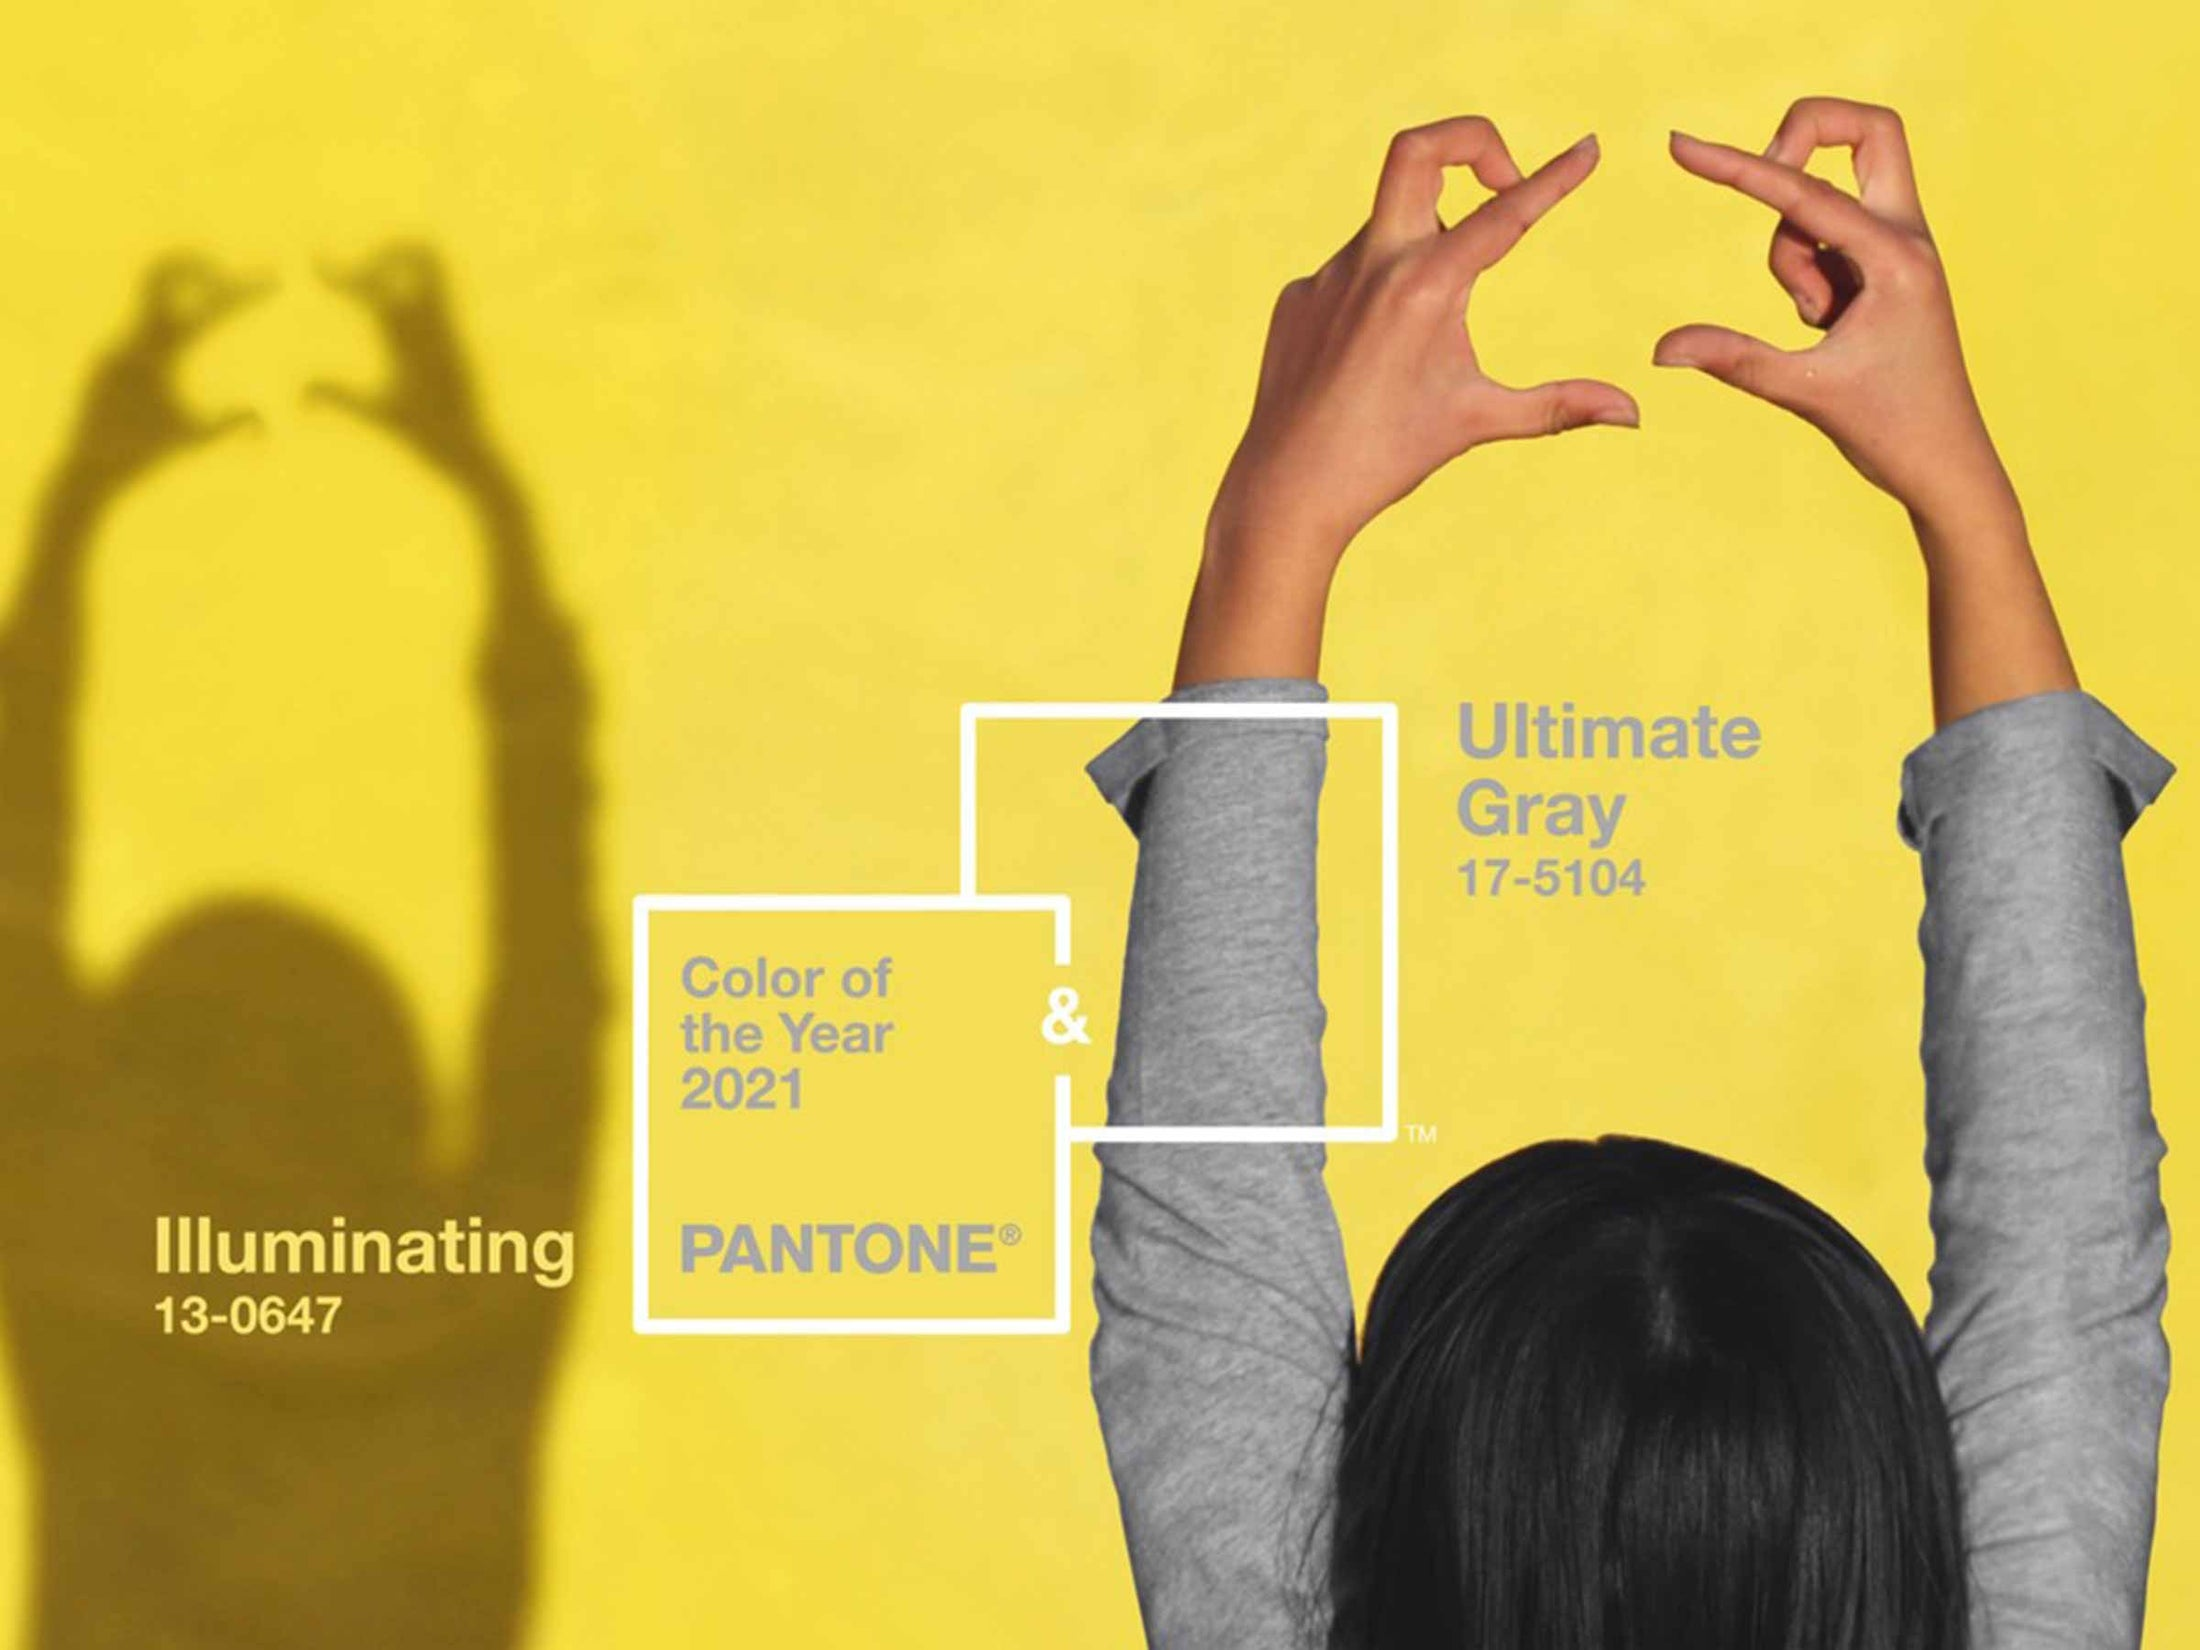 Decorating Your Home with Pantone's Color of the Year: Ultimate Gray